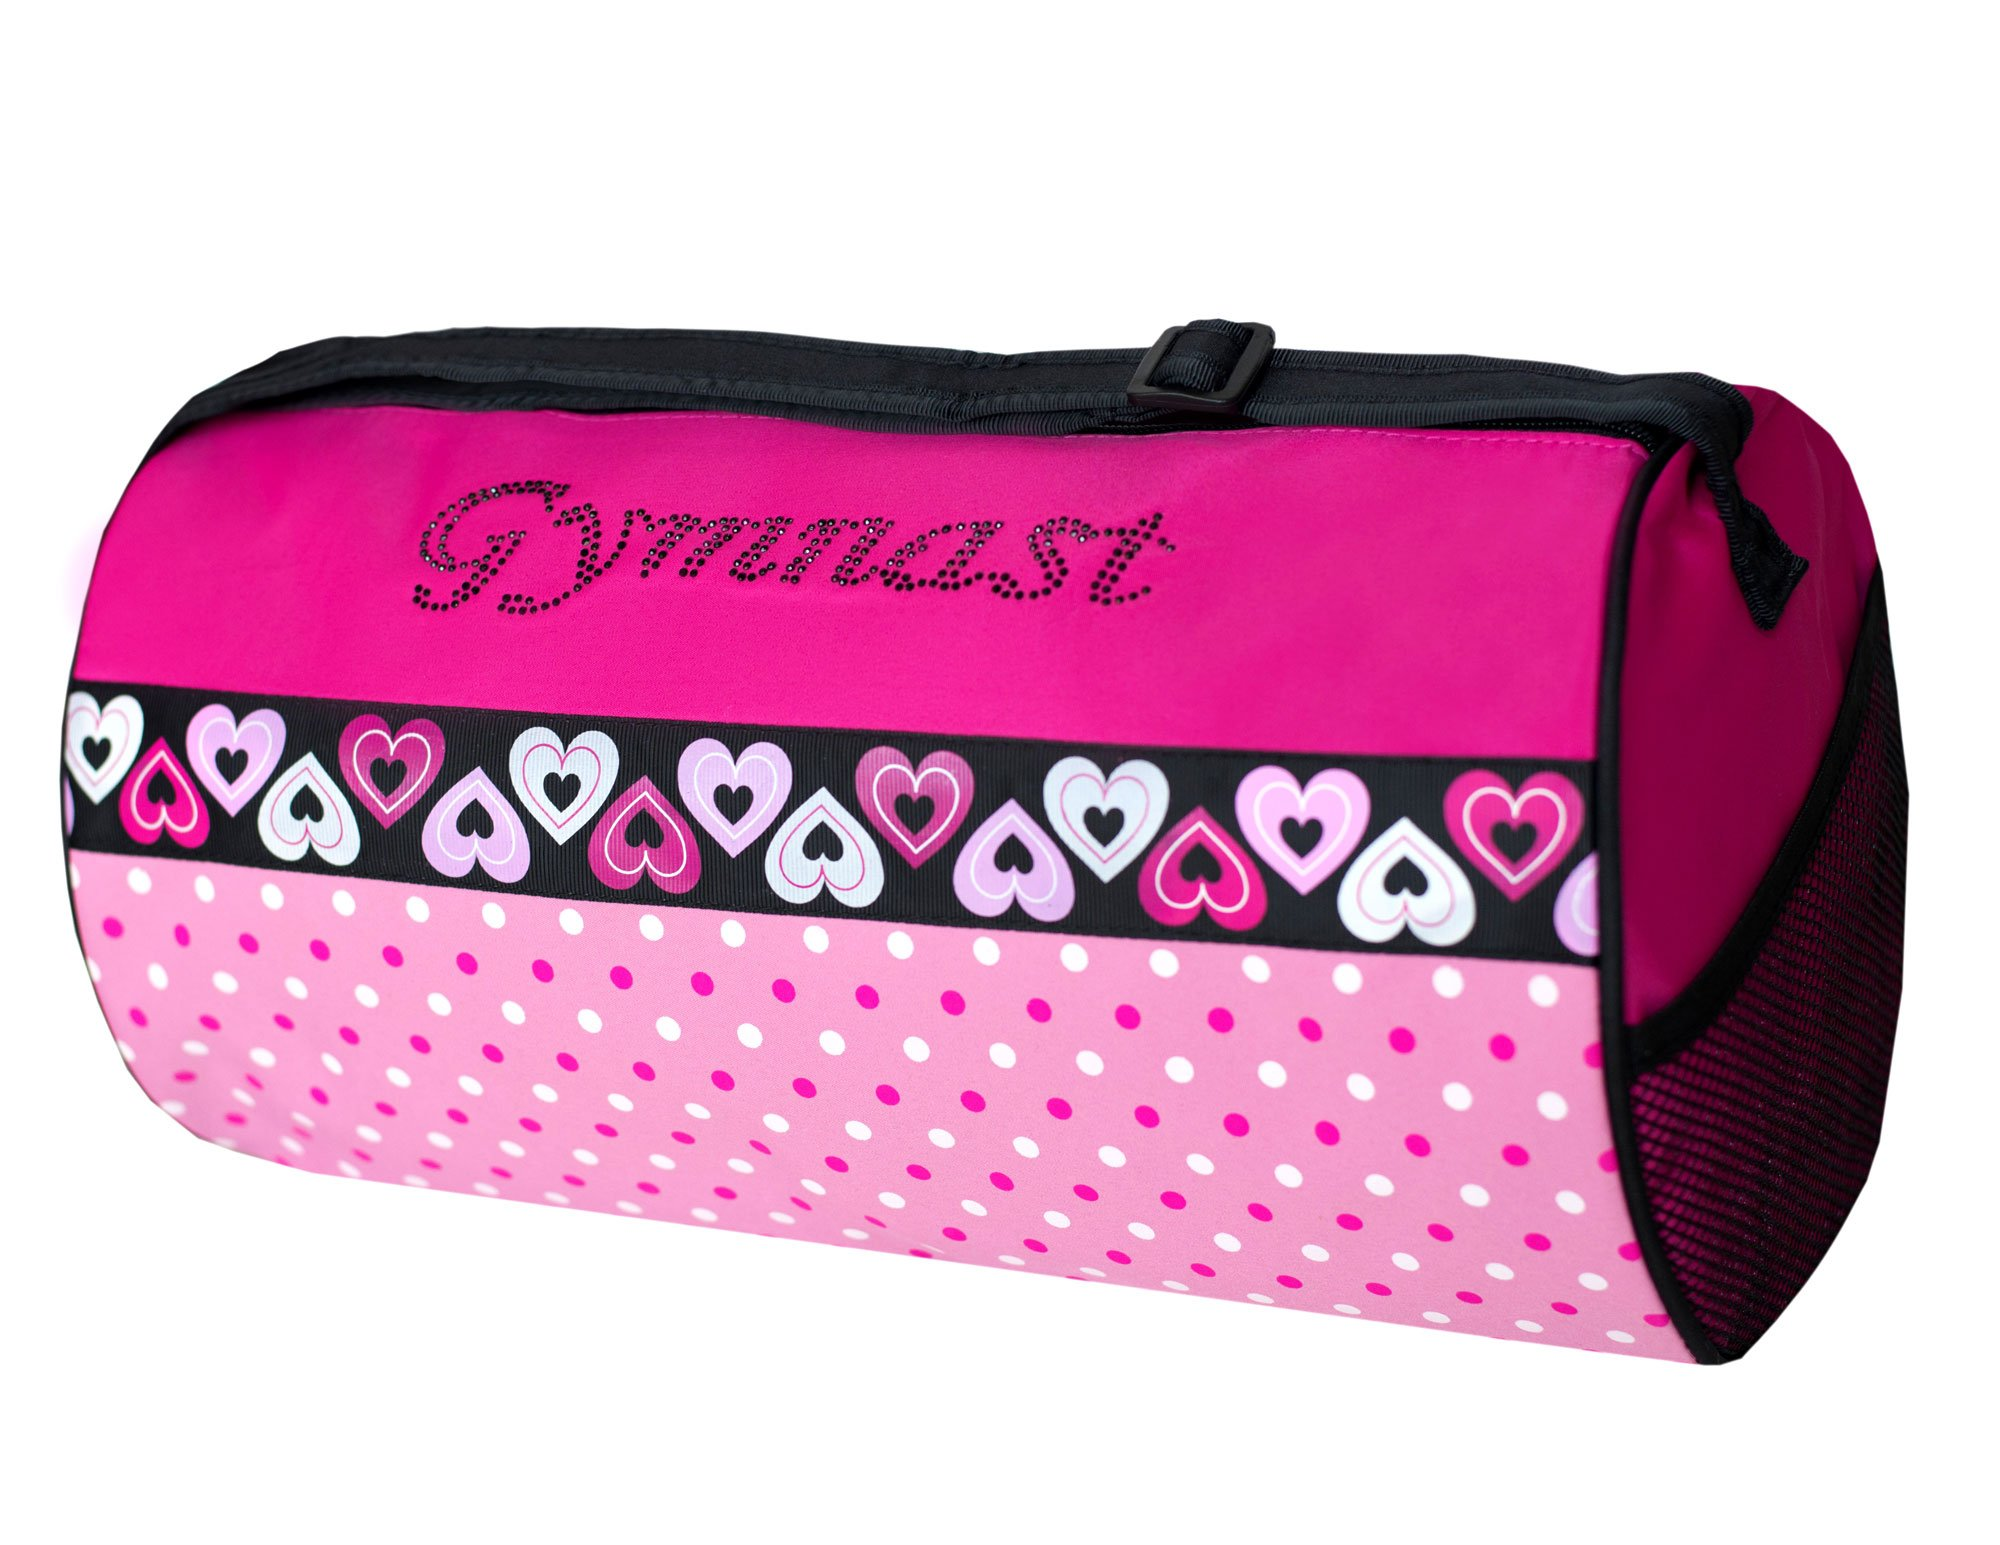 Sassi Designs Dots & Hearts Gymnast Duffel Bag